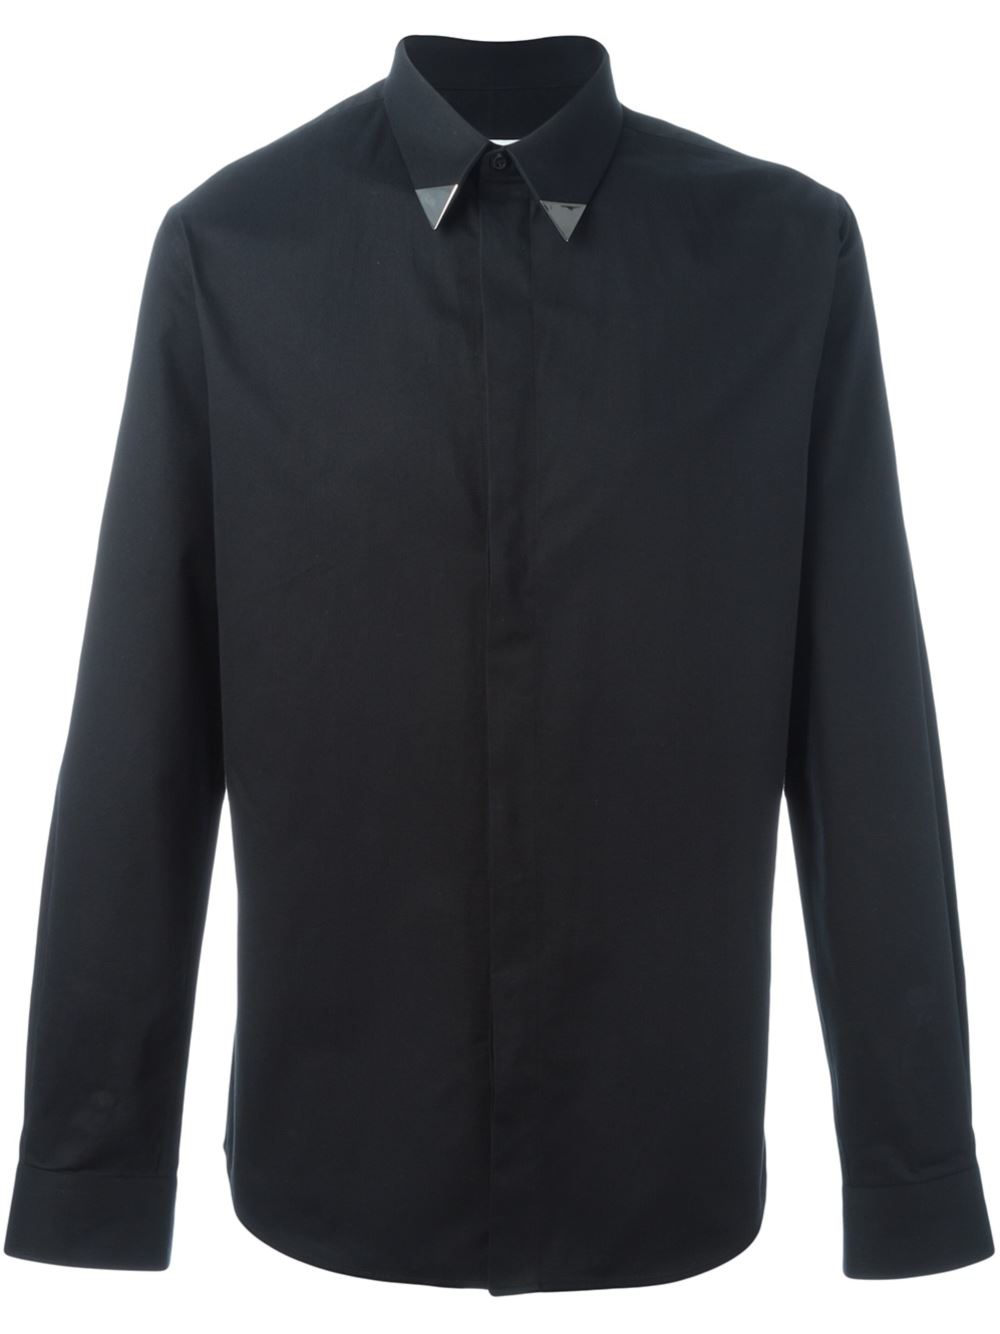 givenchy metallic collar tip shirt in black for men lyst